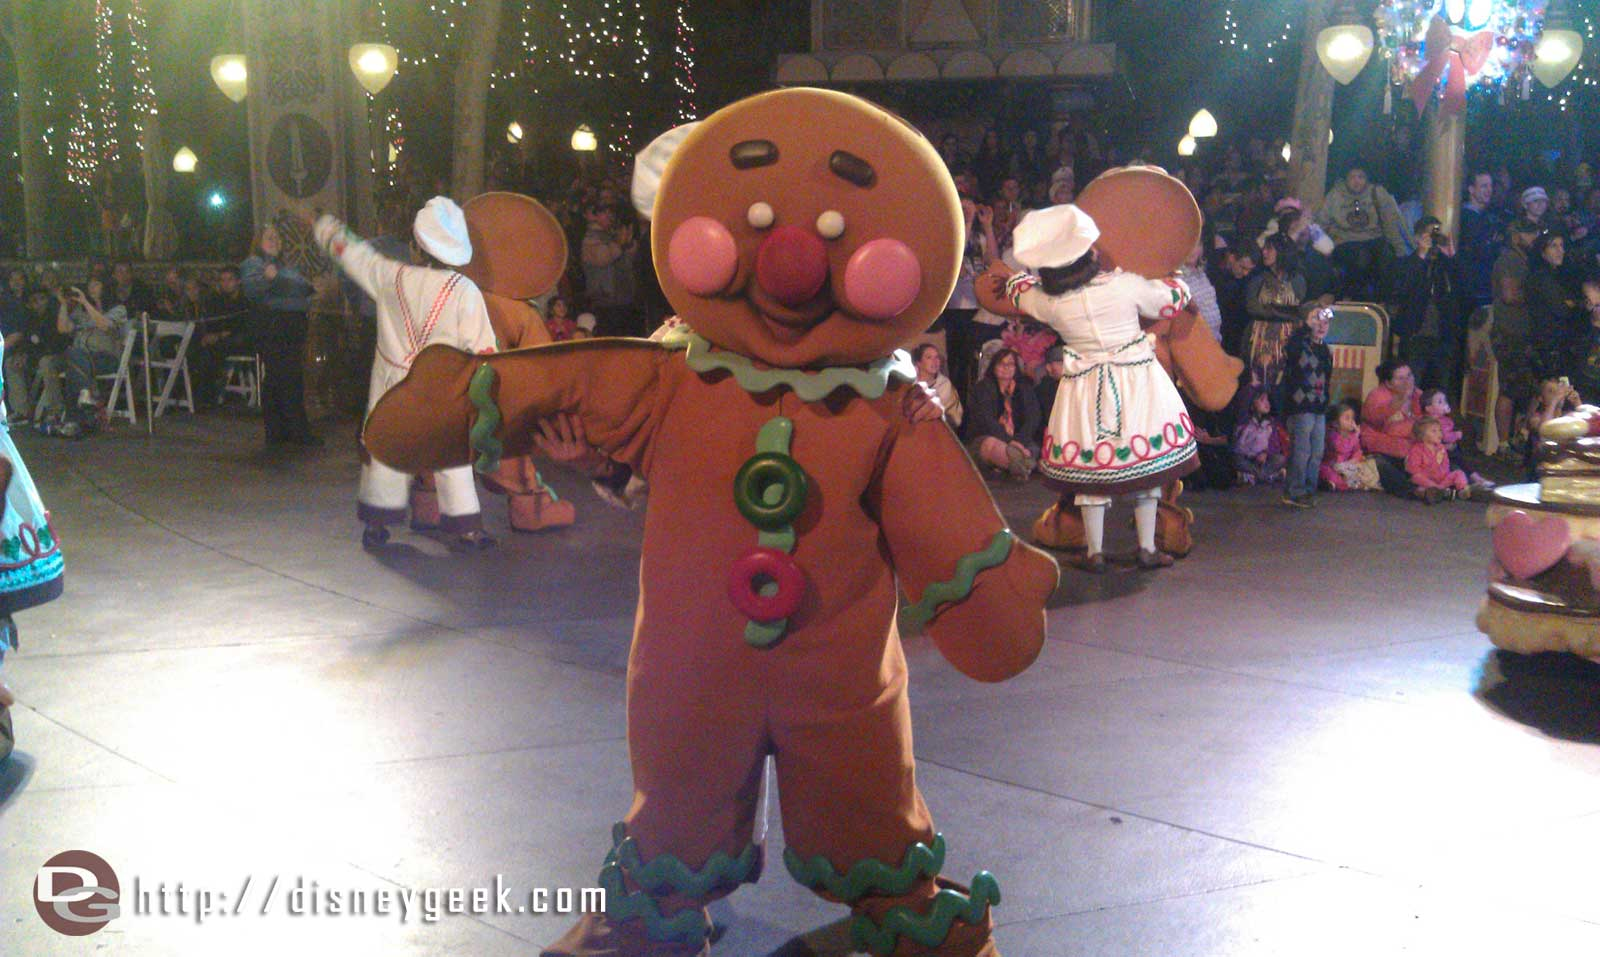 Gingerbread people passing by during a Christmas Fantasy